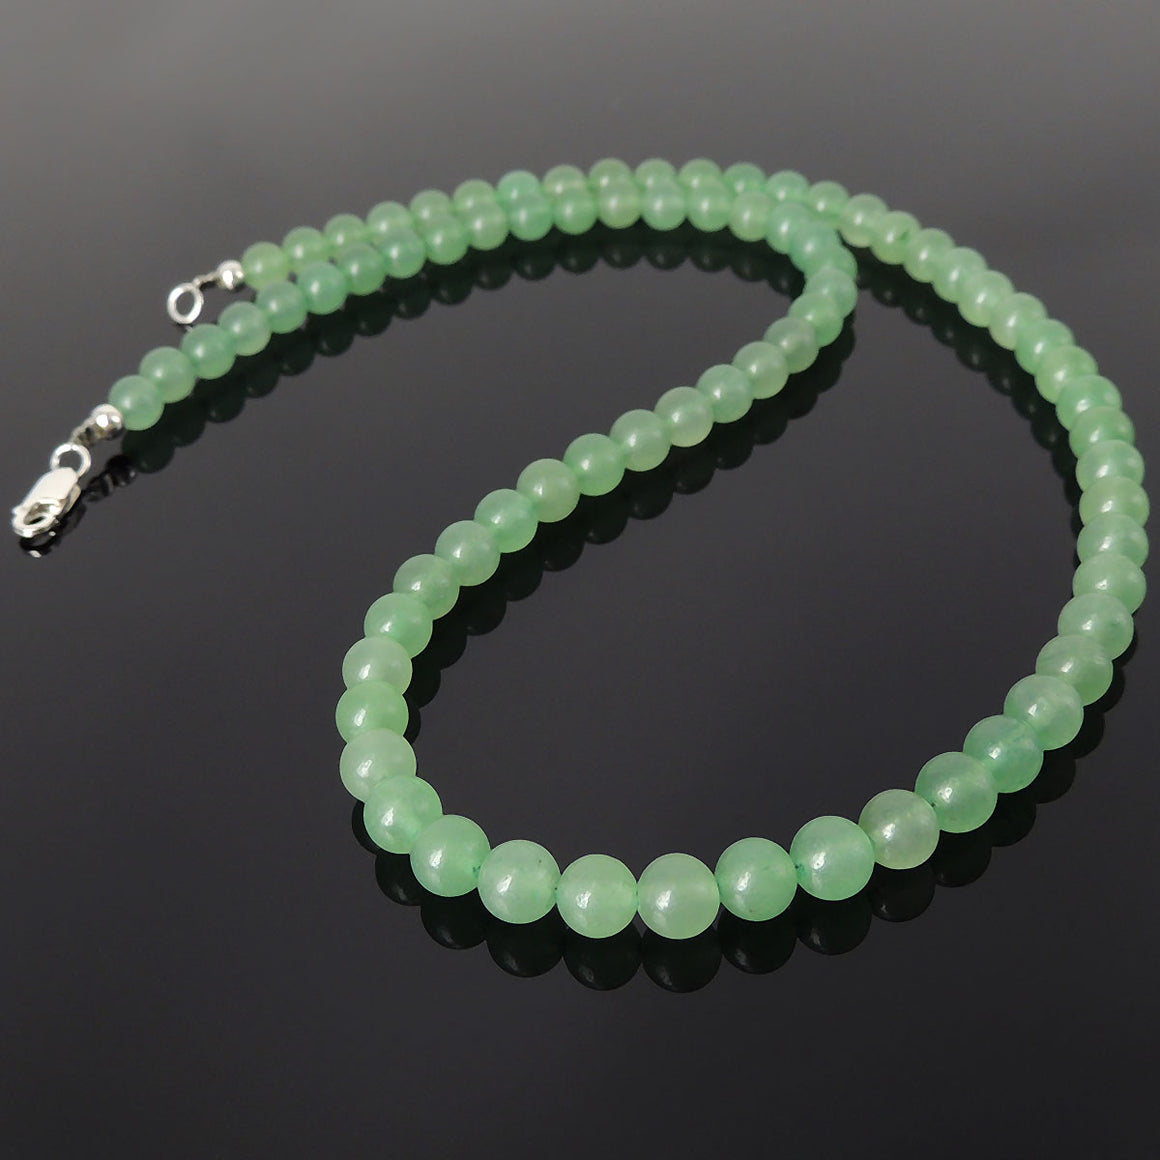 6mm Aventurine Quartz Healing Gemstone Necklace with S925 Sterling Silver Spacer Beads & Clasp - Handmade by Gem & Silver NK200